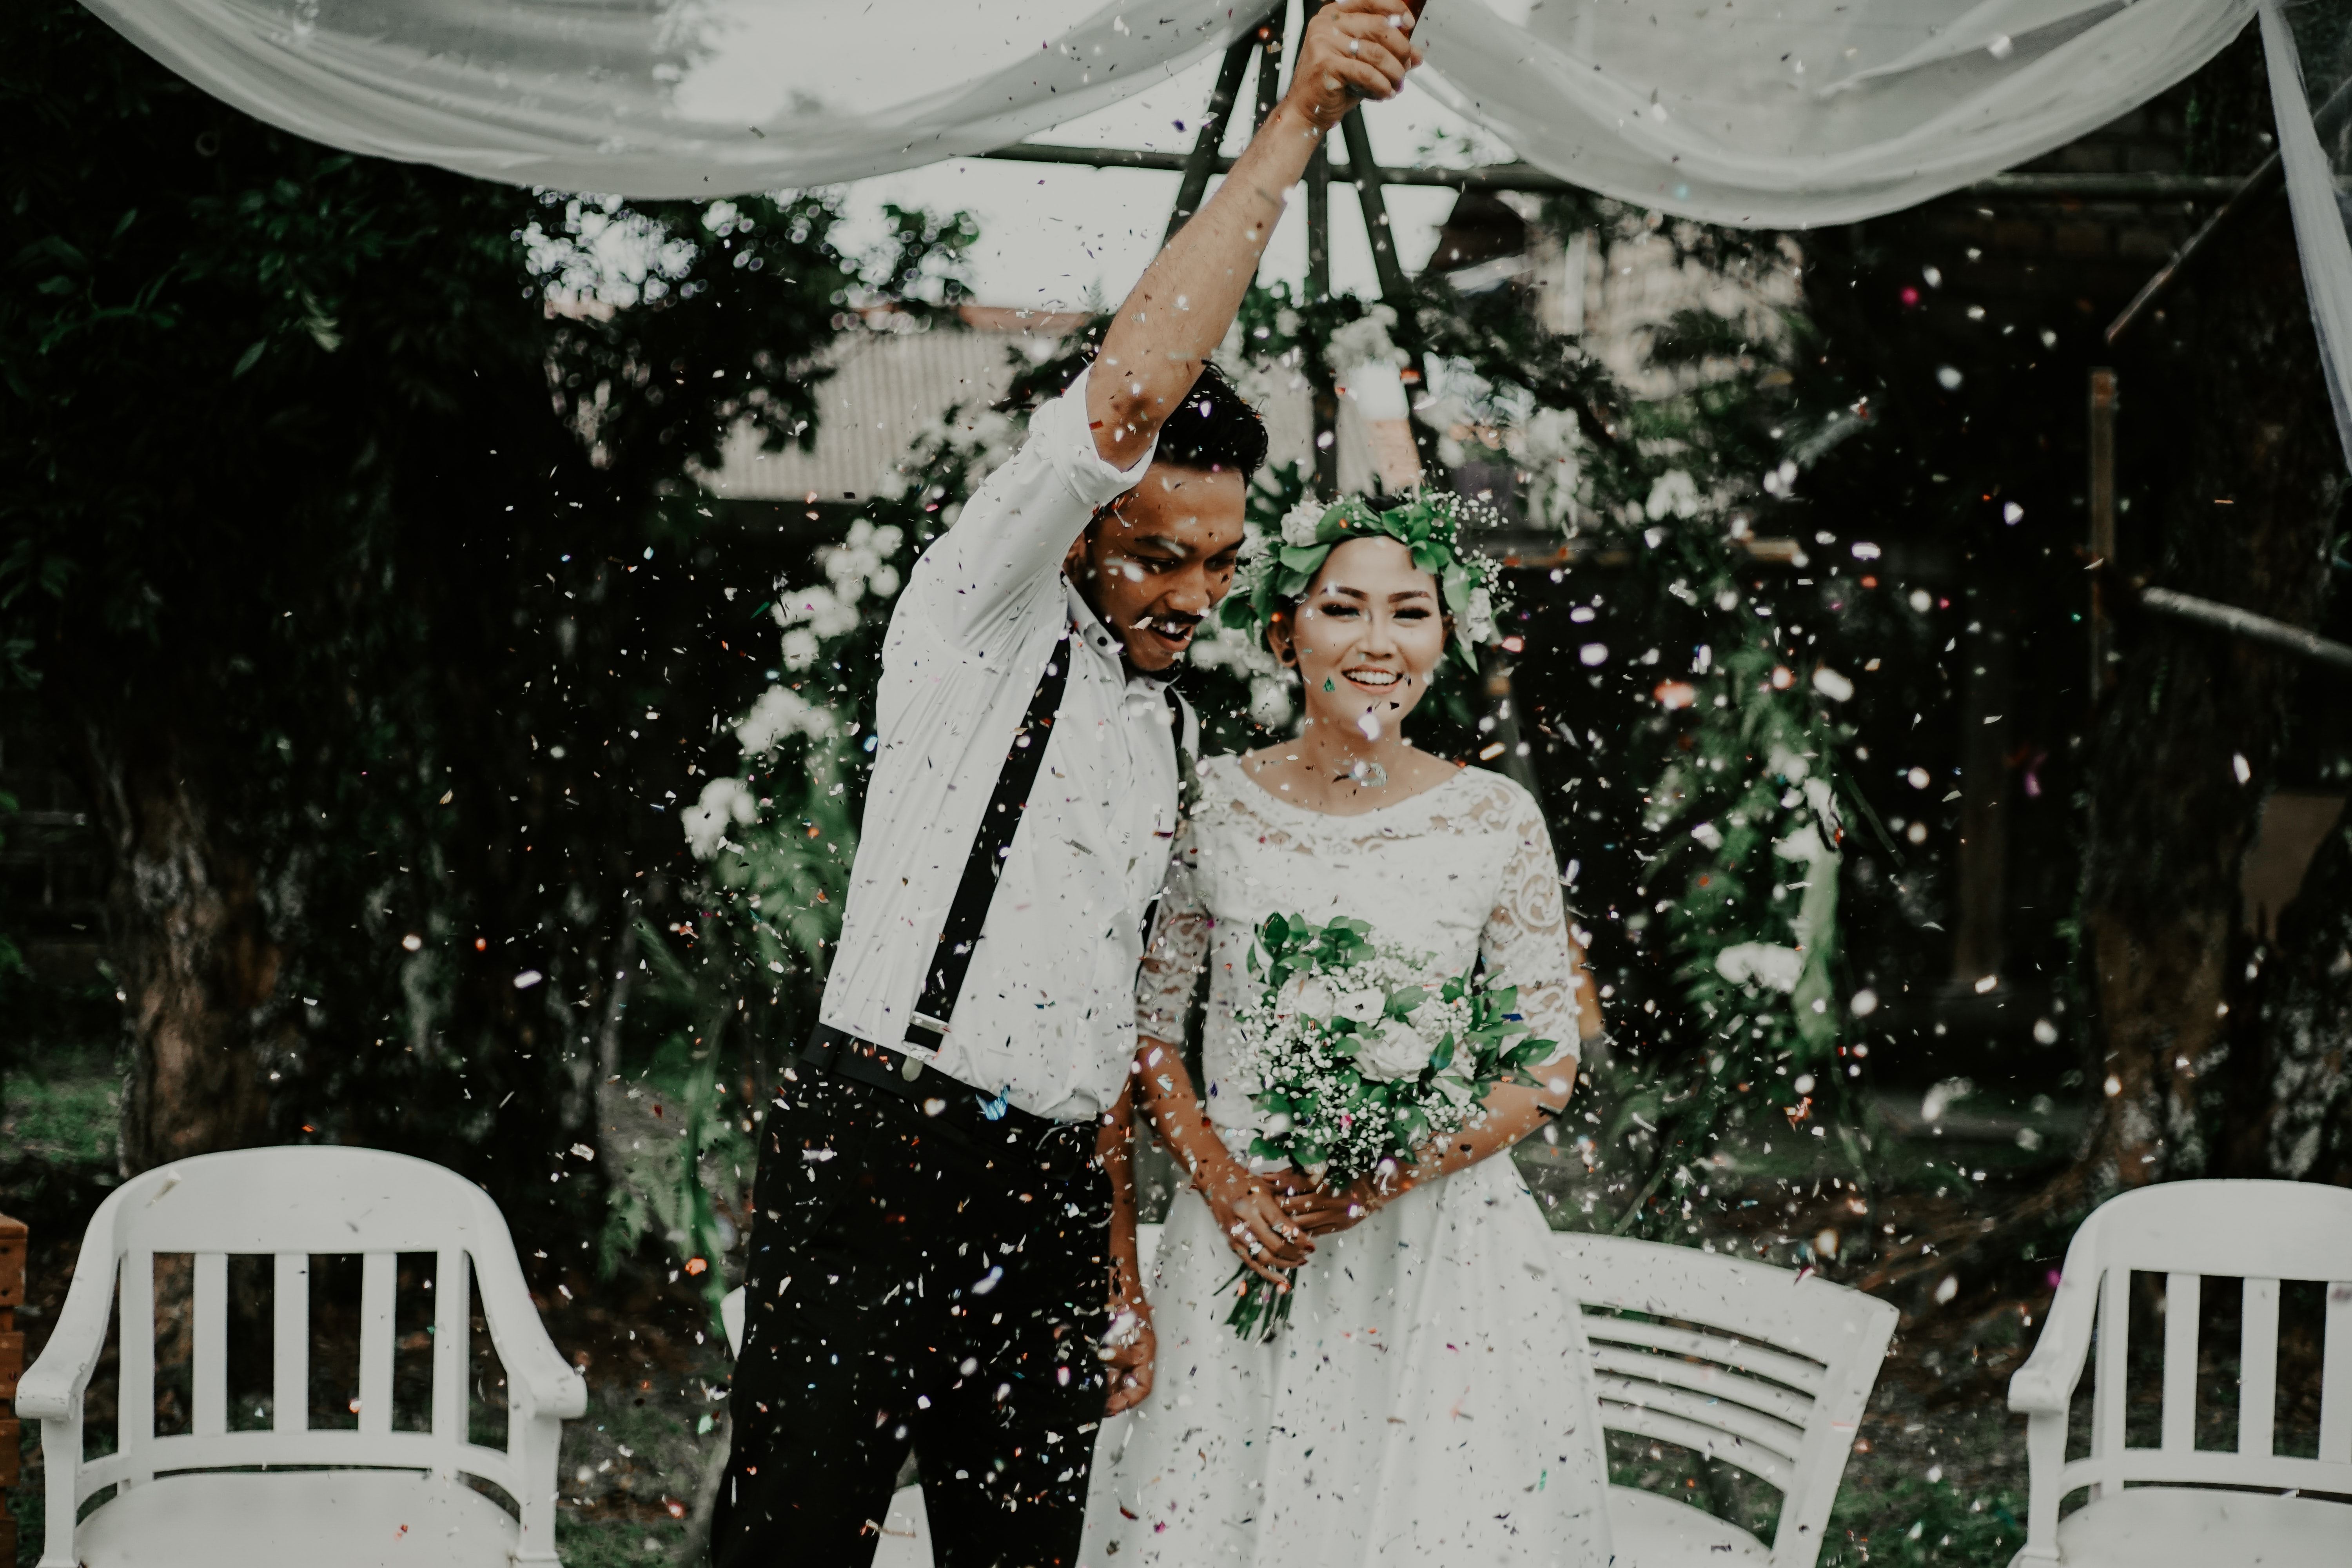 [Image description: a bride and groom surrounded by flying petals and confetti] Via Unsplash